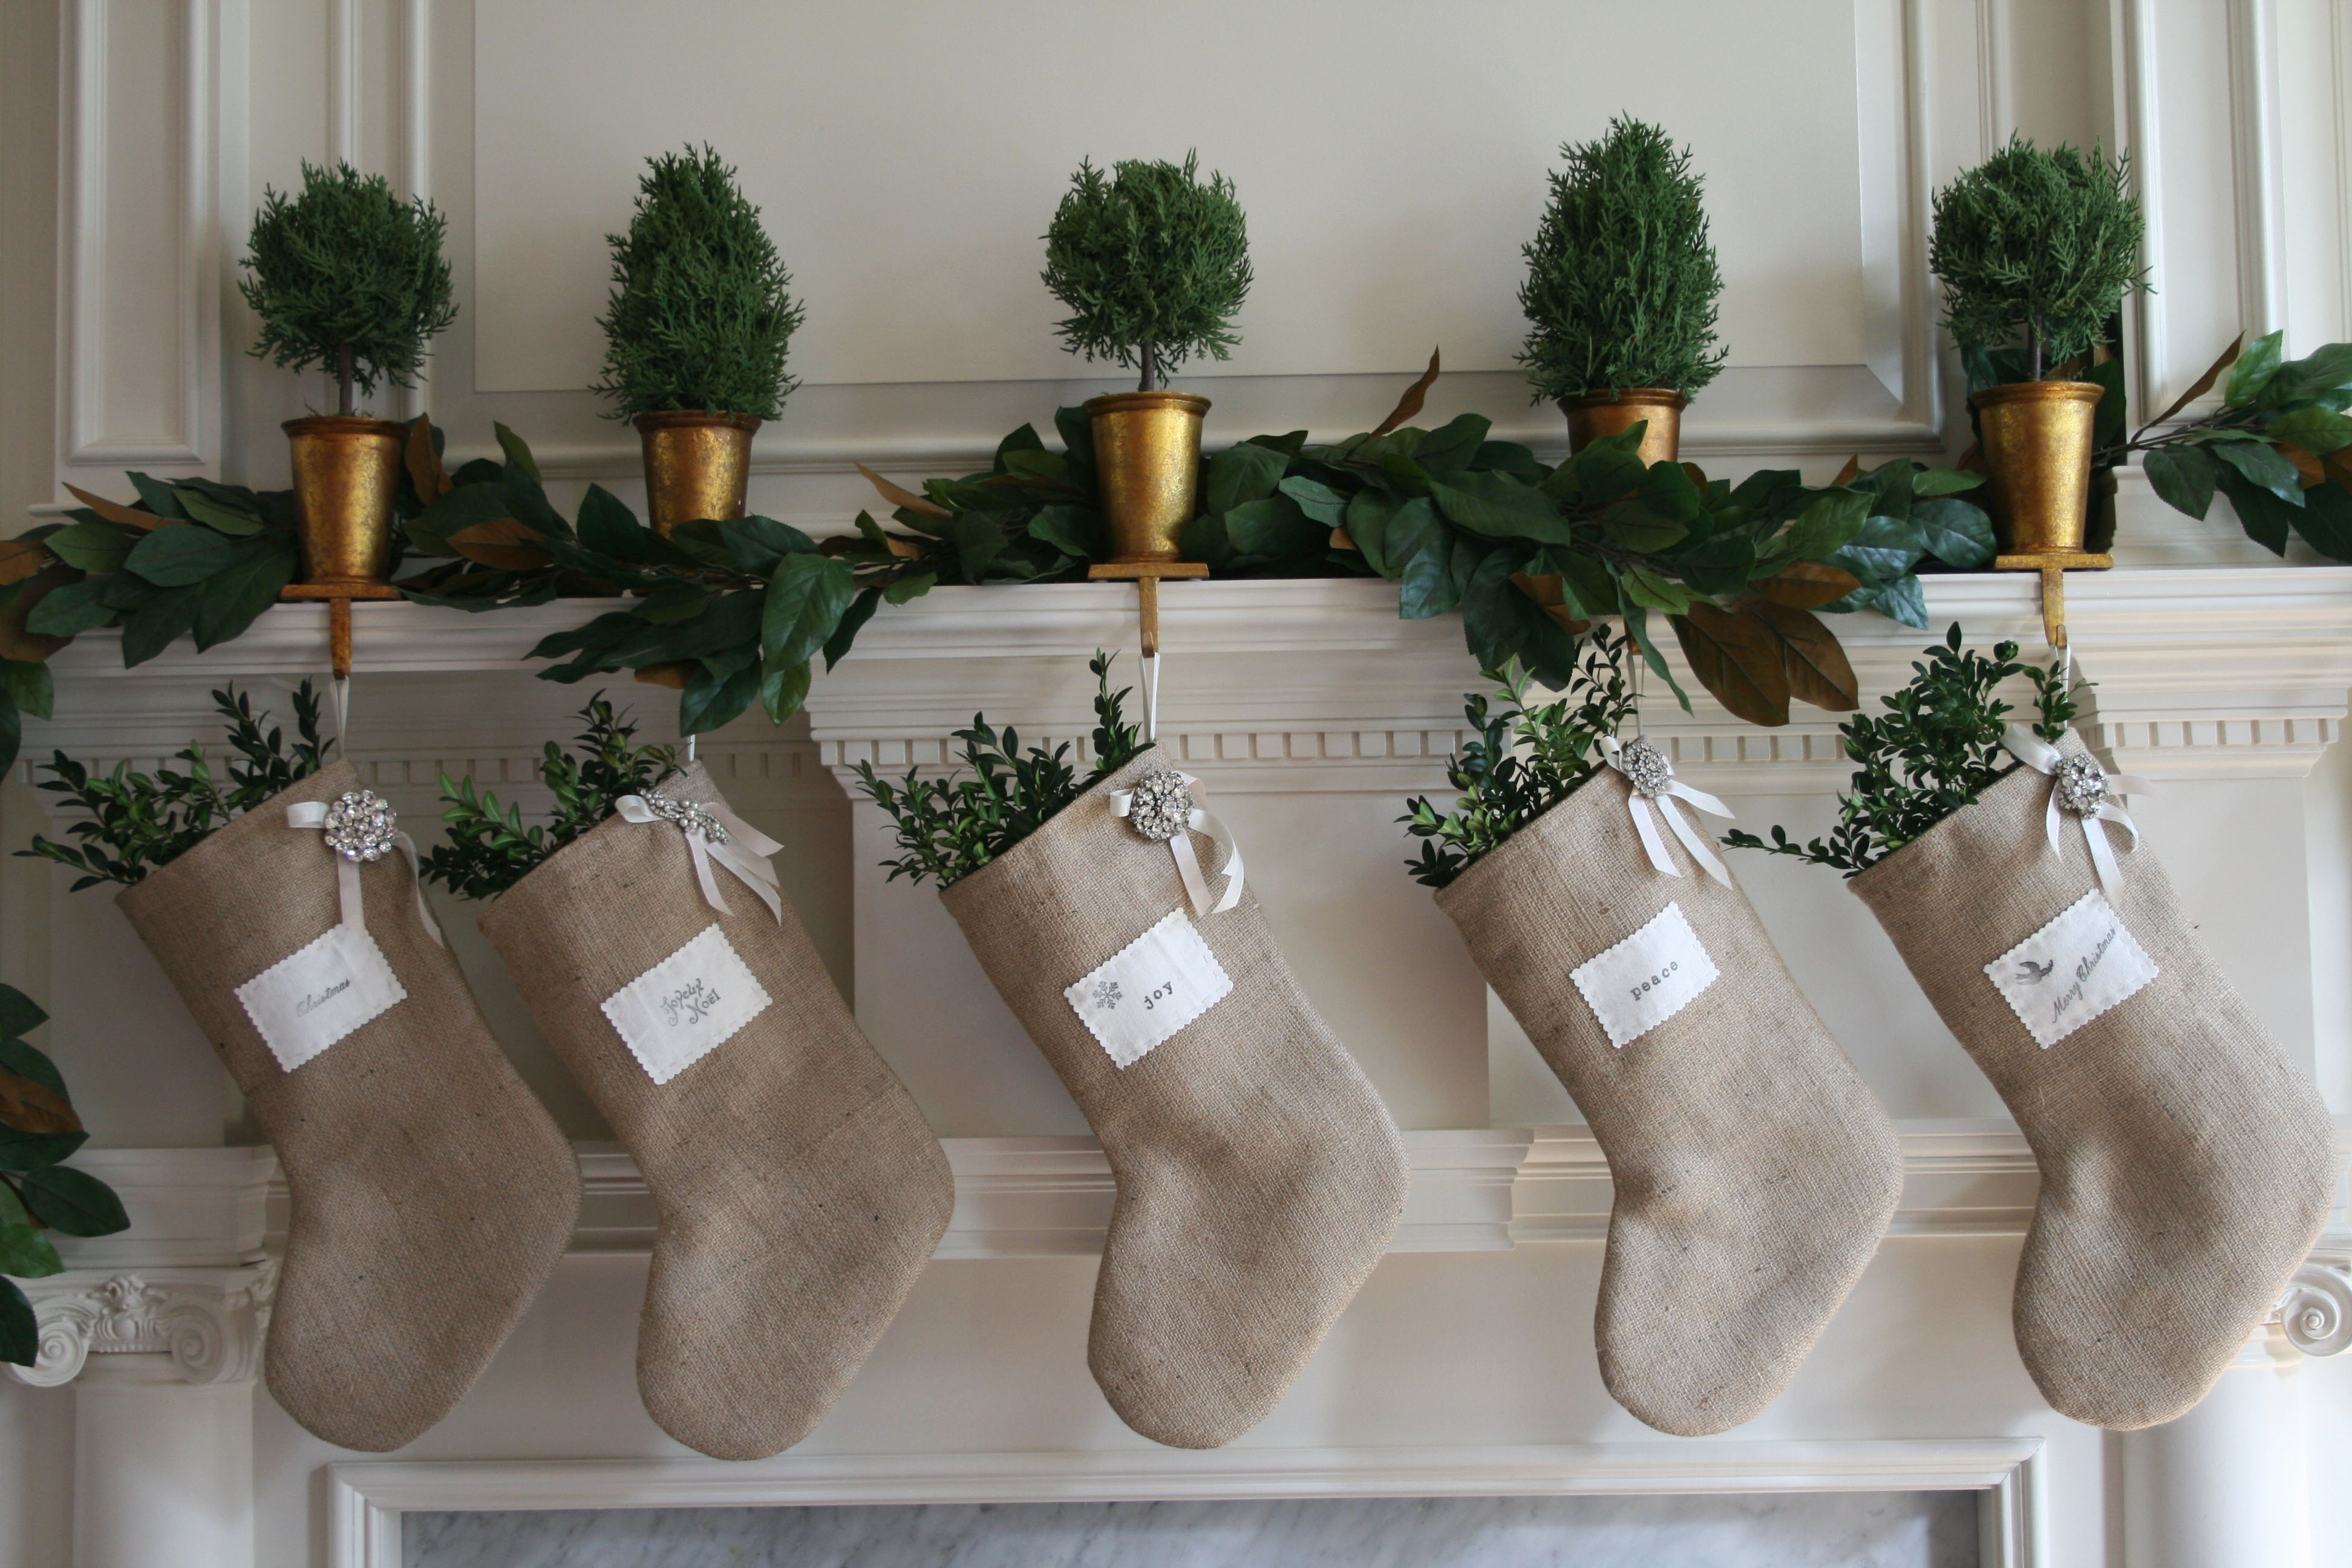 Christmas decor ideas with burlap we know how to do it - Decorating ideas using burlap ...